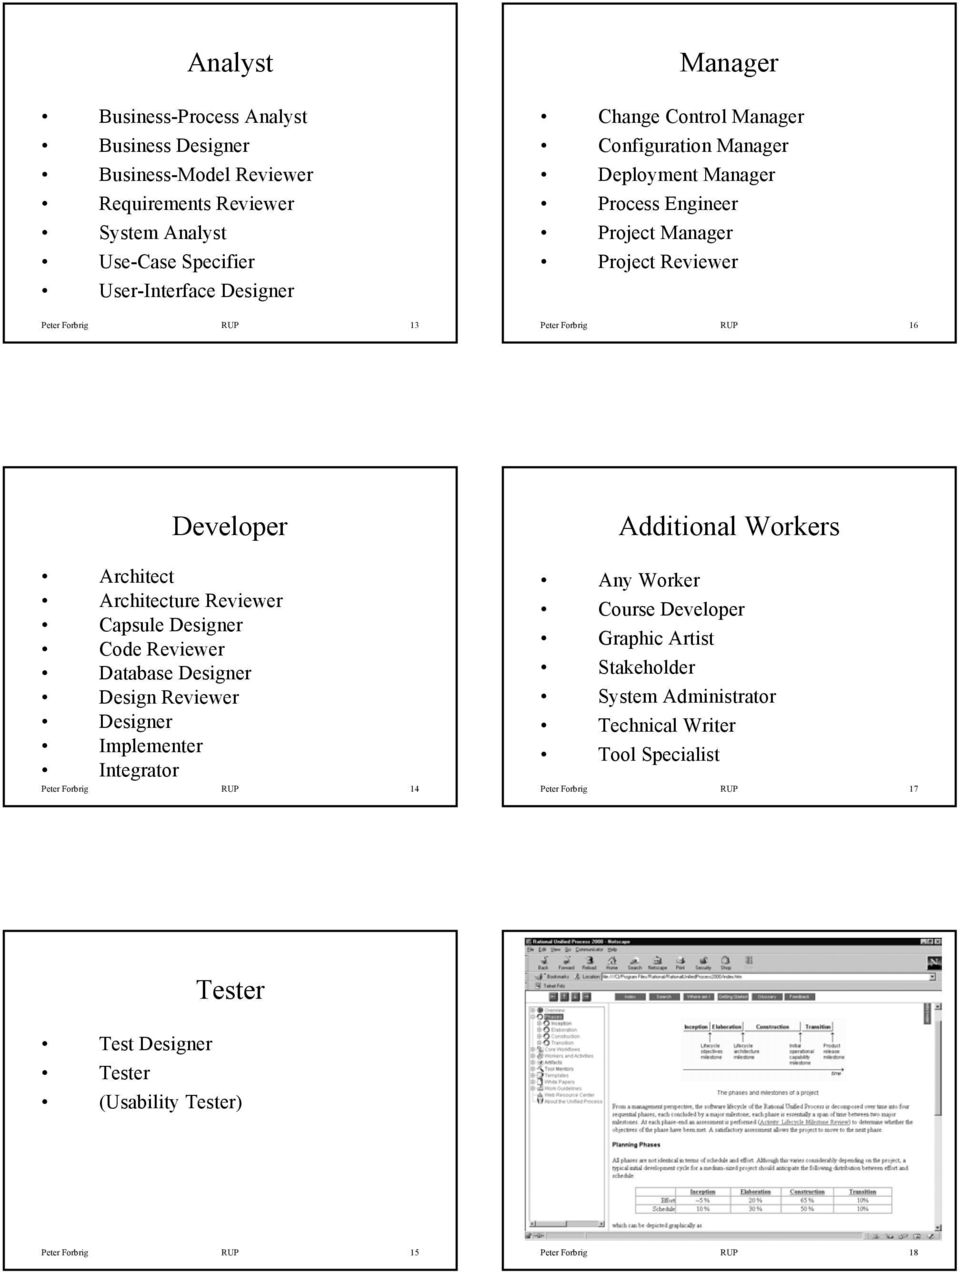 Reviewer Capsule Designer Code Reviewer Database Designer Design Reviewer Designer Implementer Integrator Peter Forbrig RUP 14 Additional Workers Any Worker Course Developer